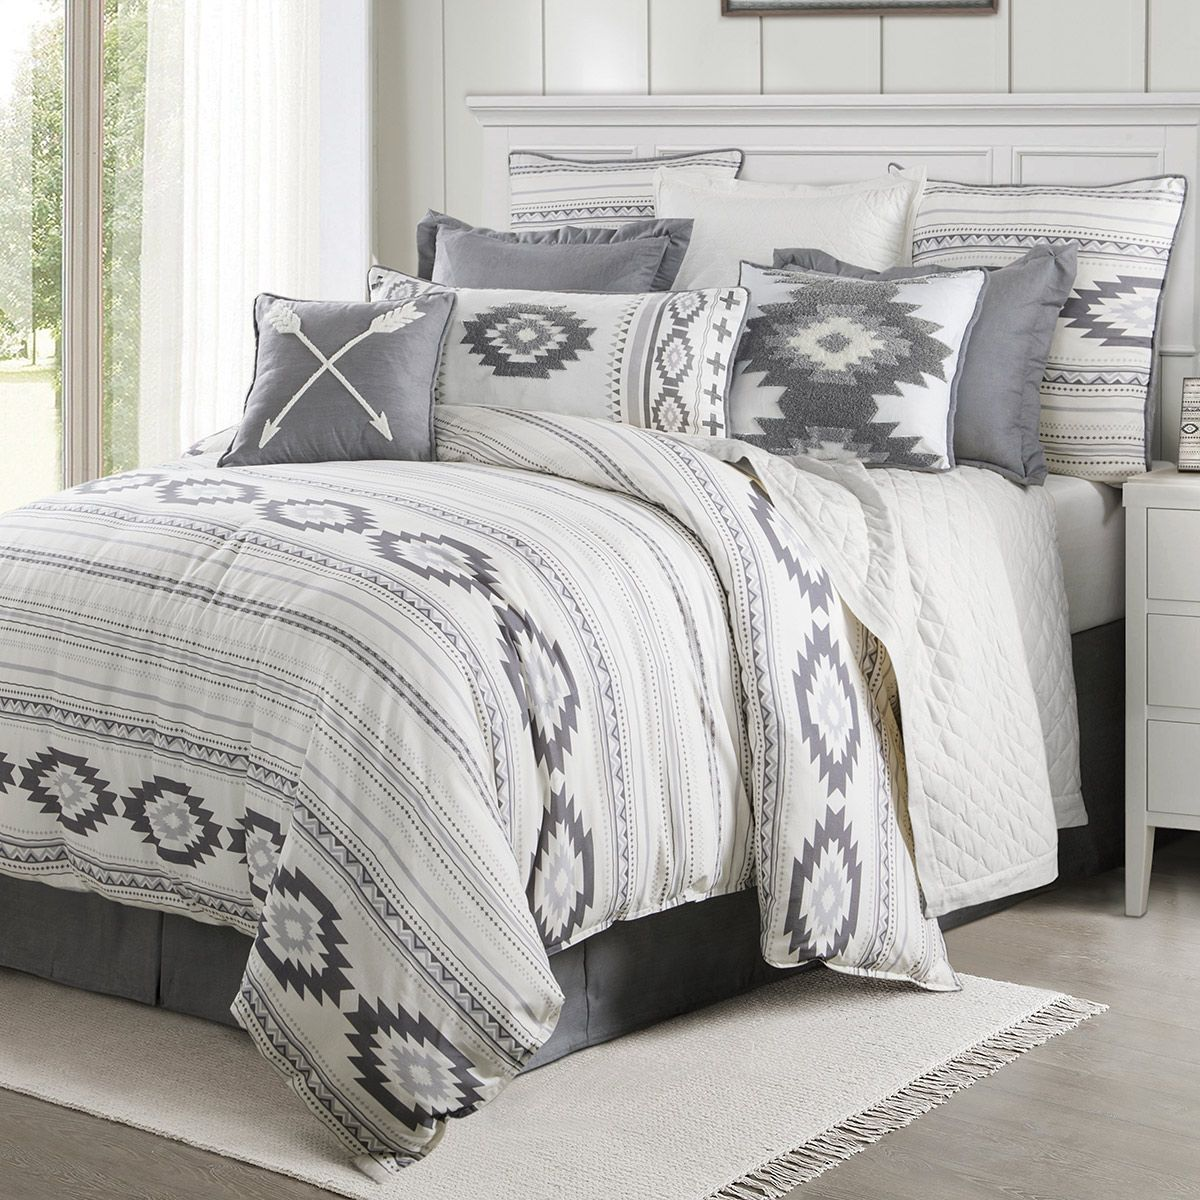 Taos Frost Bed Set - Twin